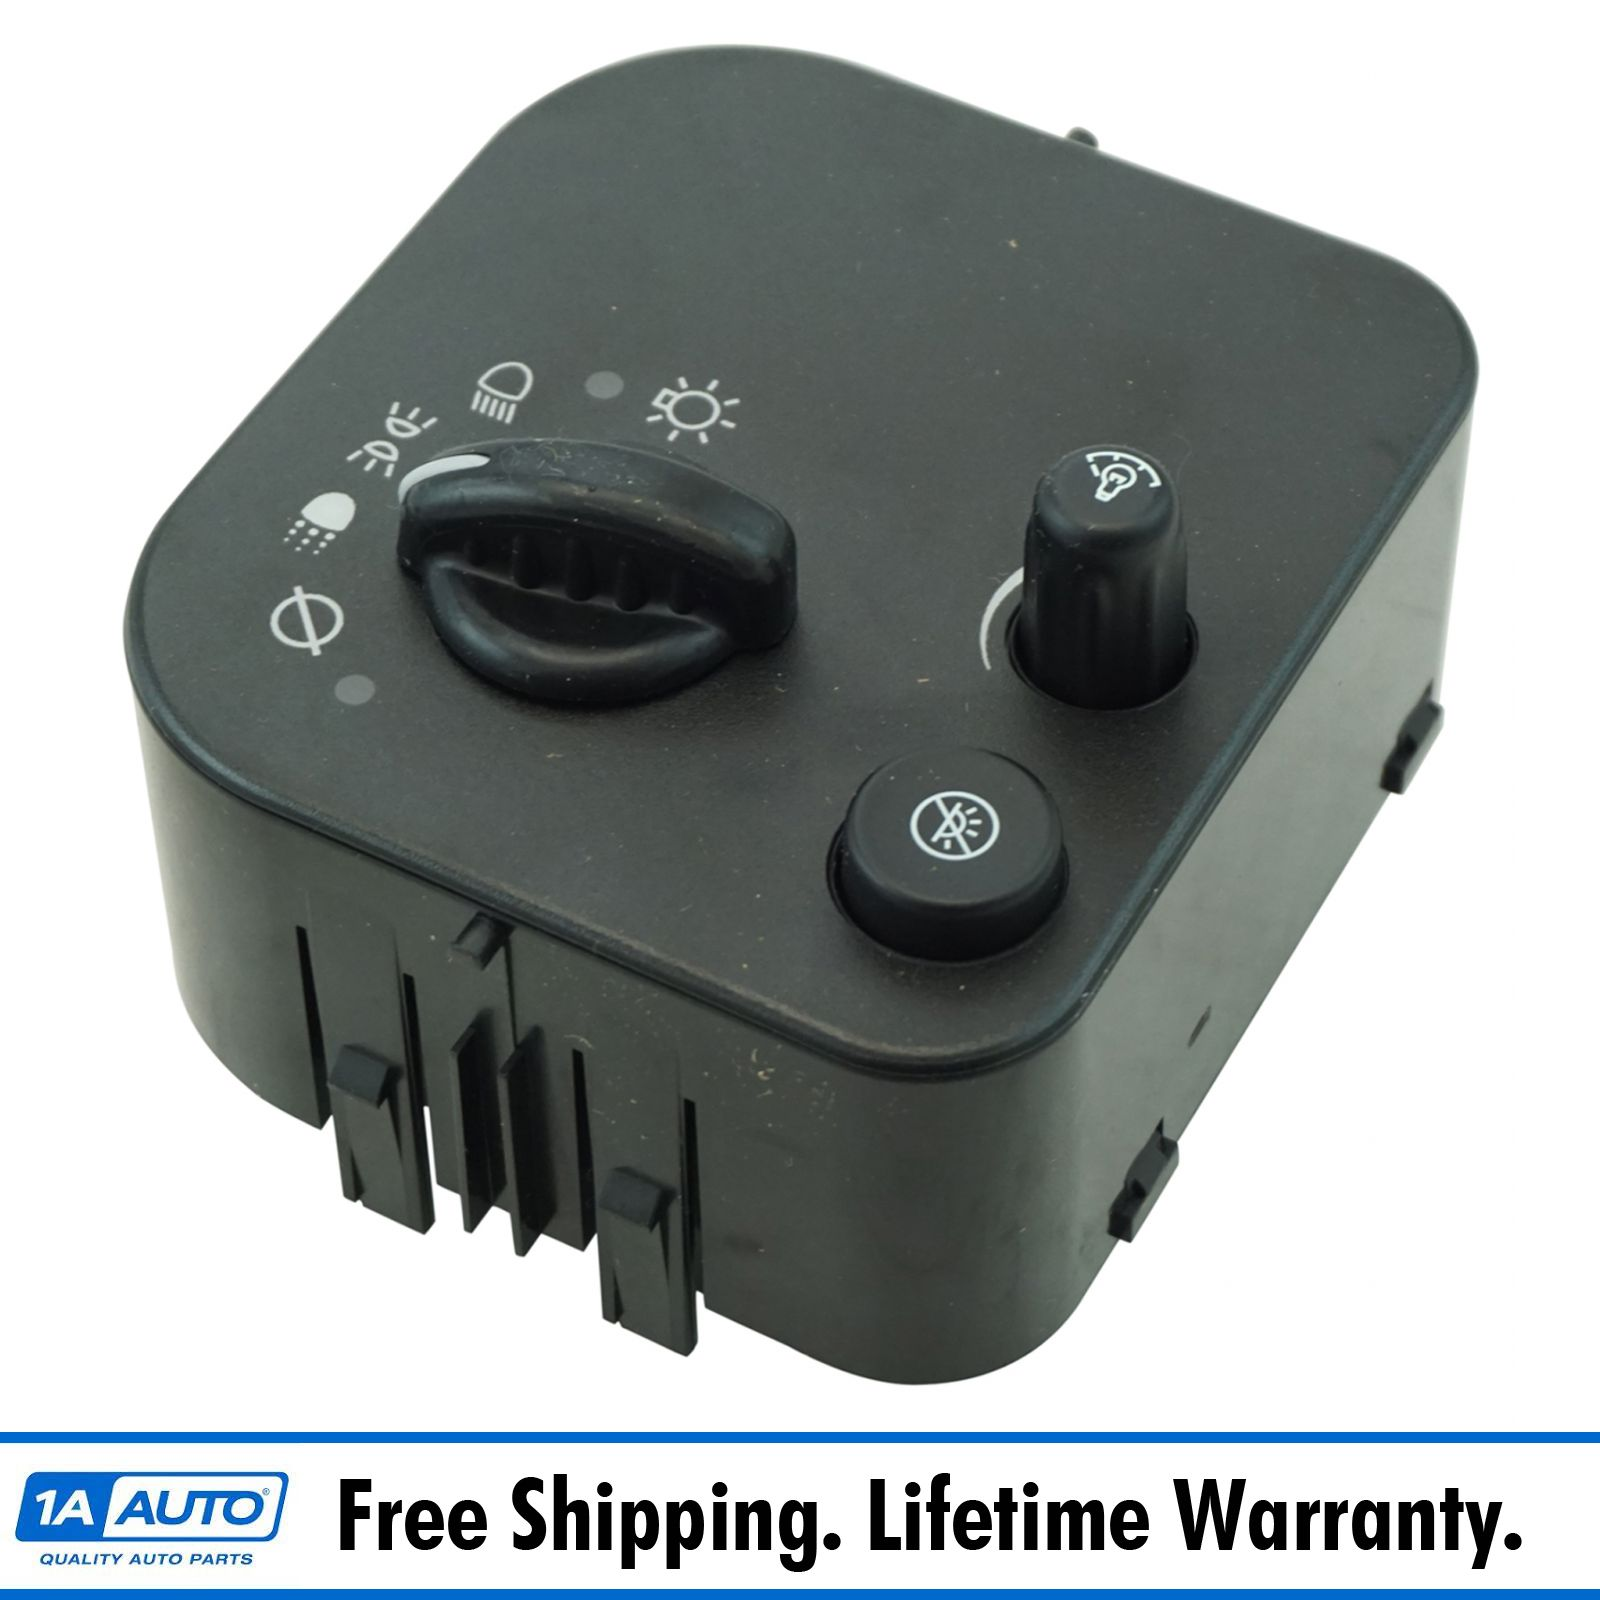 1A Auto Headlight Lamp Switch Assembly for Chevy Buick GMC New